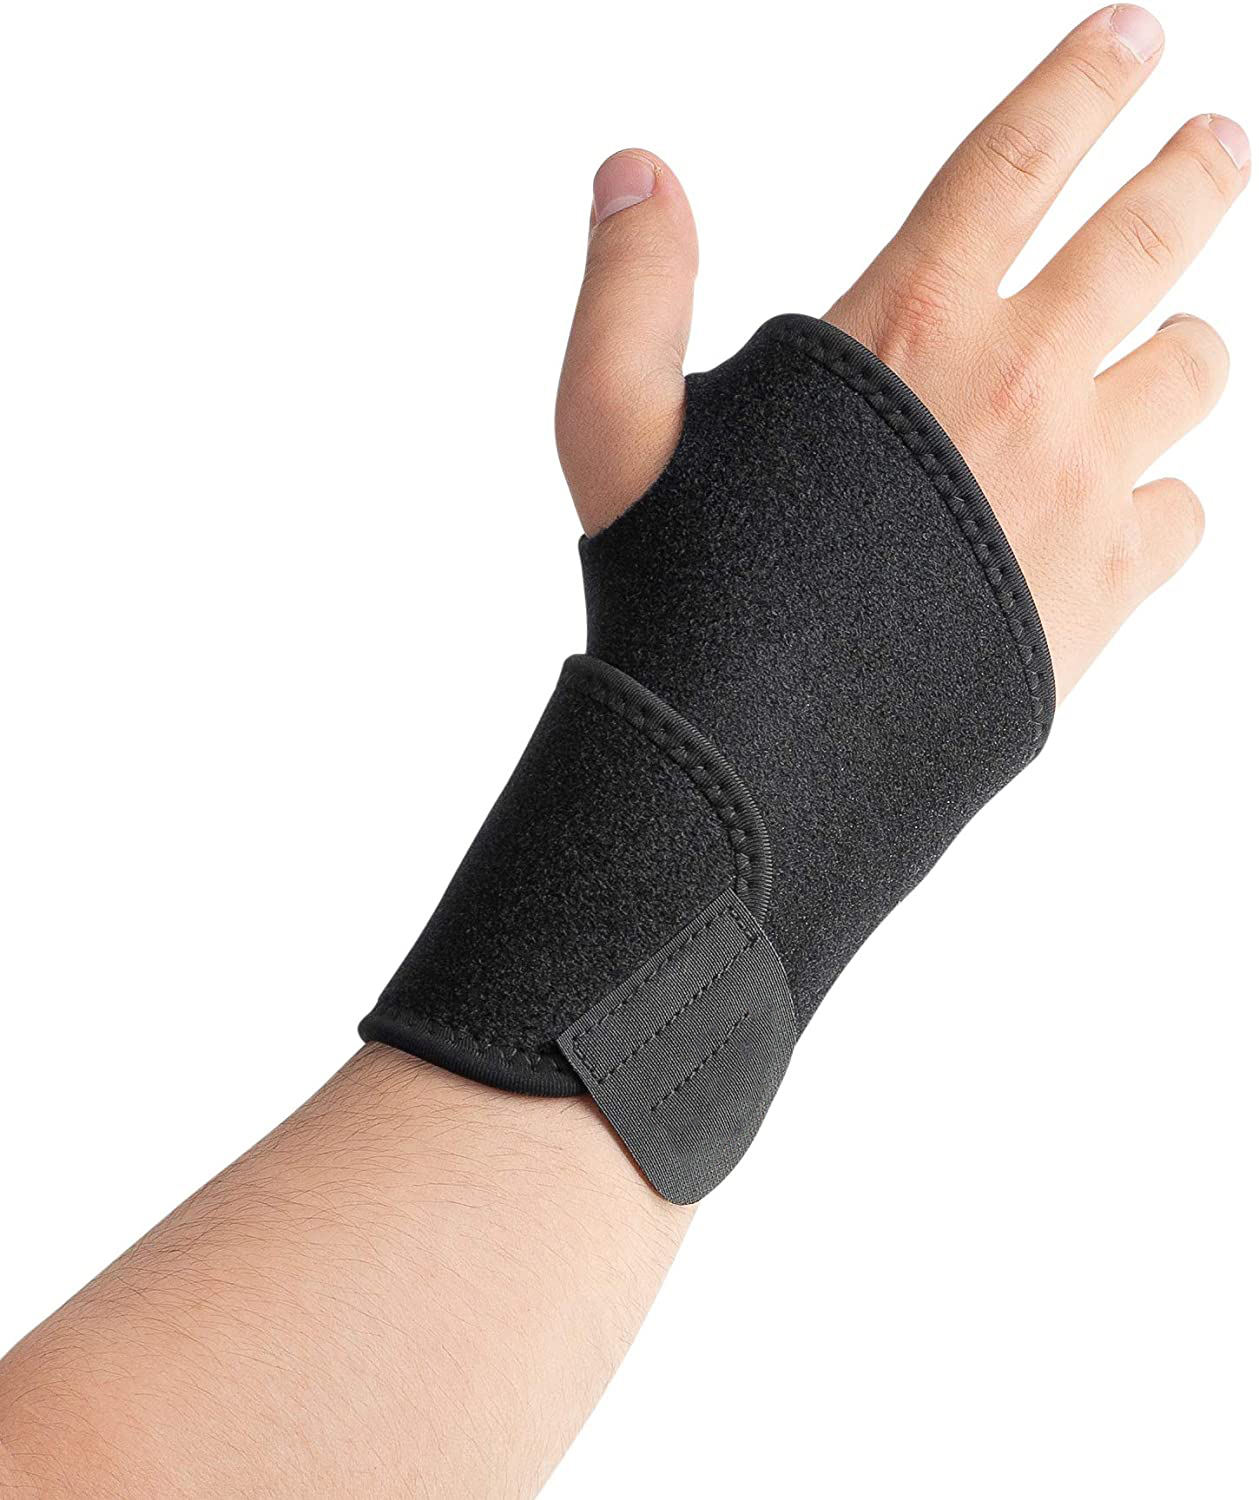 Breathable Adjustable Gel Wrist Support Brace Thumb Support Reversible Stabilizer Splint Wrist Support Brace Universal Neoprene